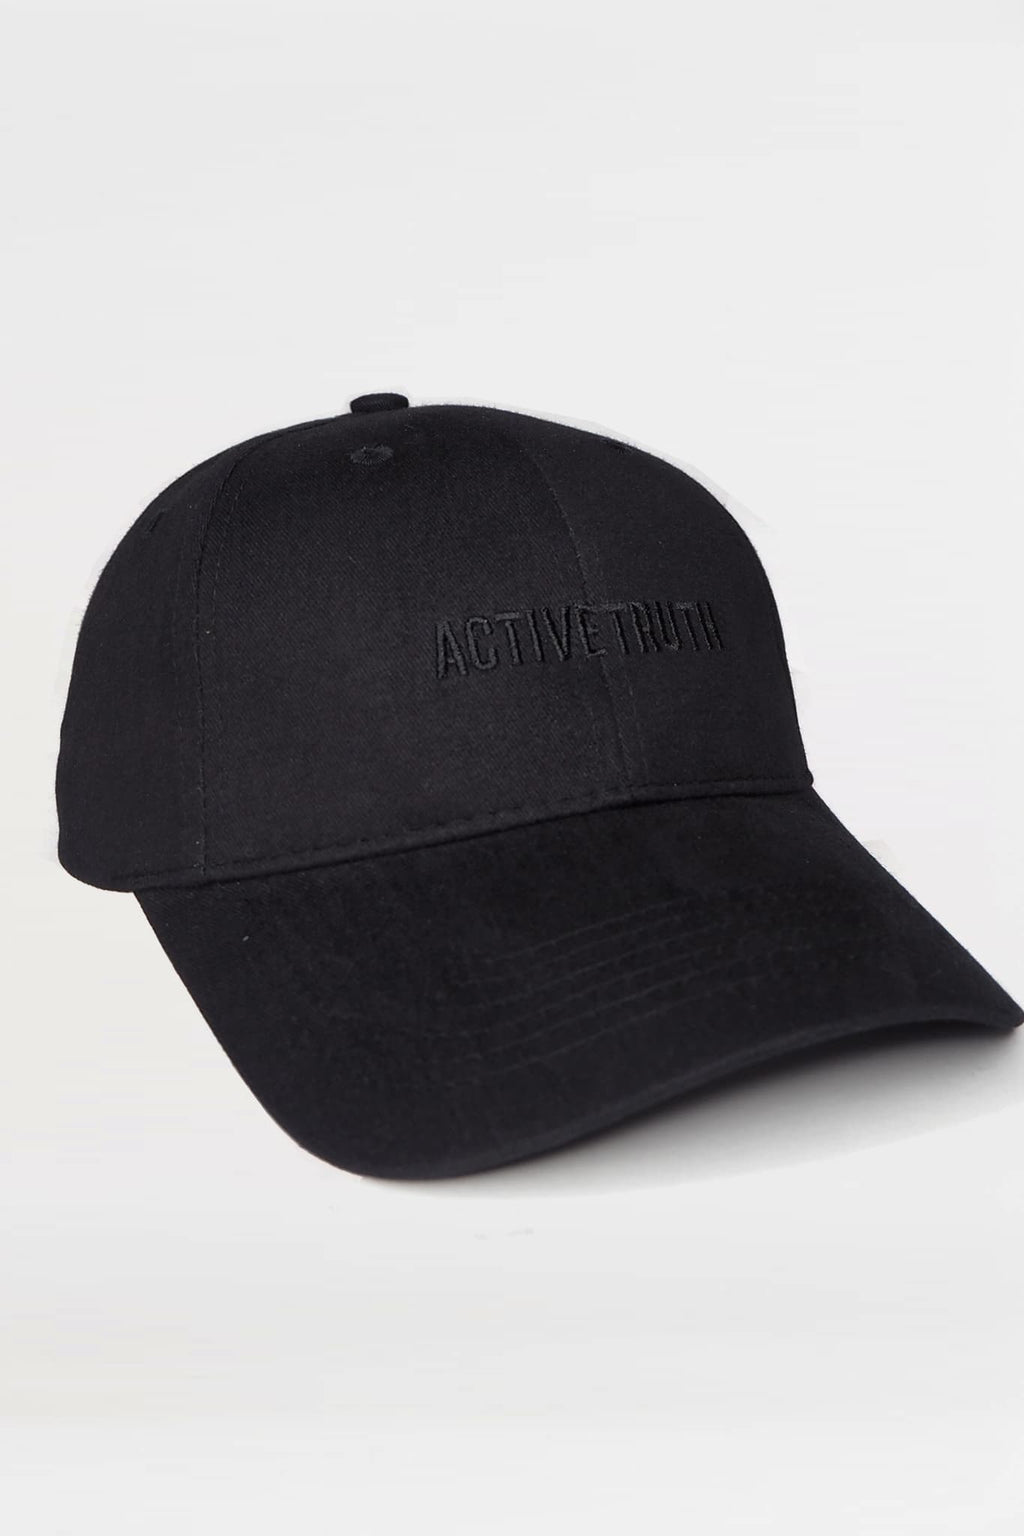 workout-cap-embroidered-hat-black